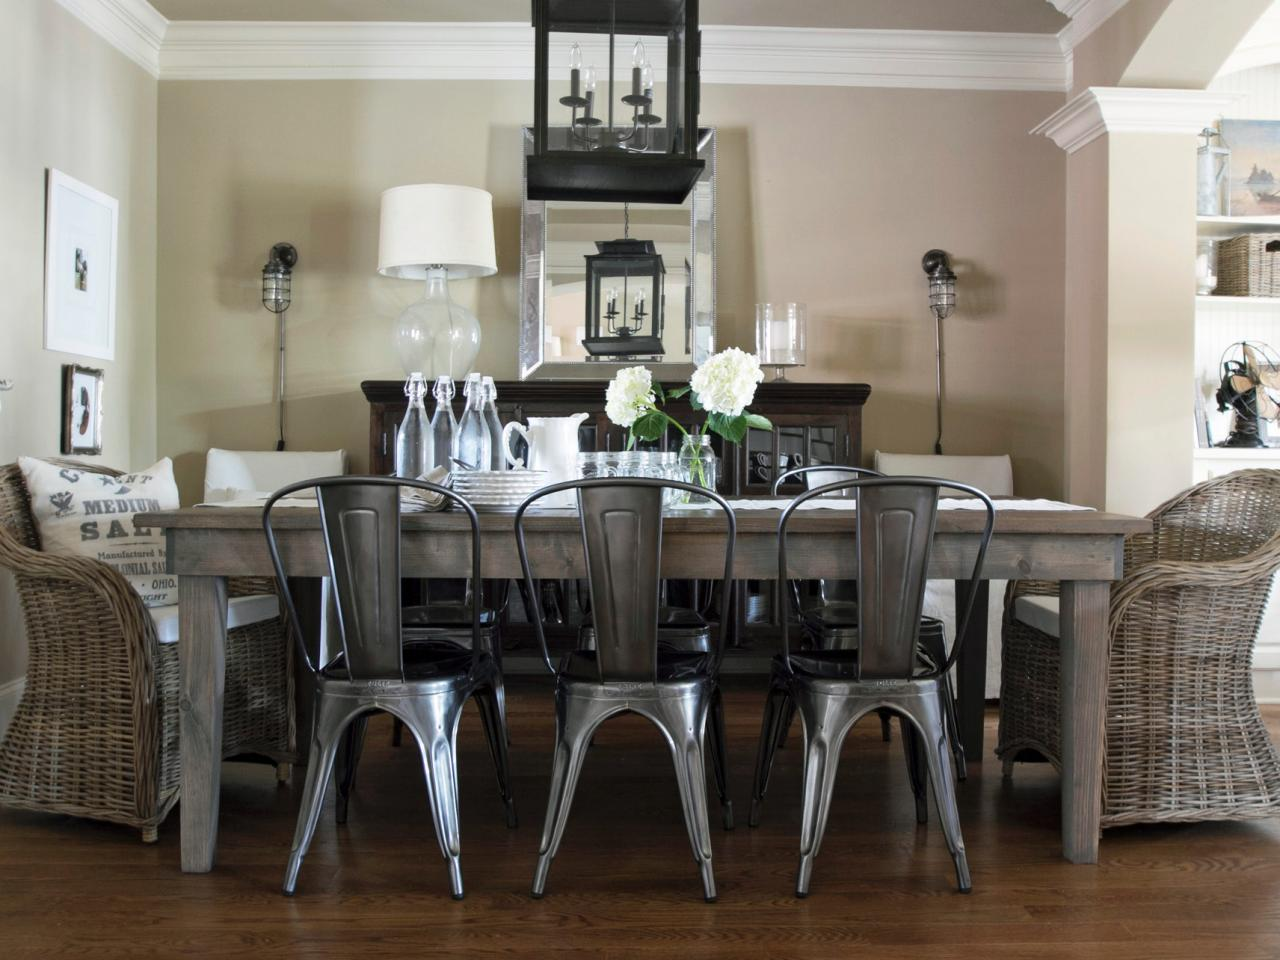 look-out-for-chairs-and-beds-with-such-finishing